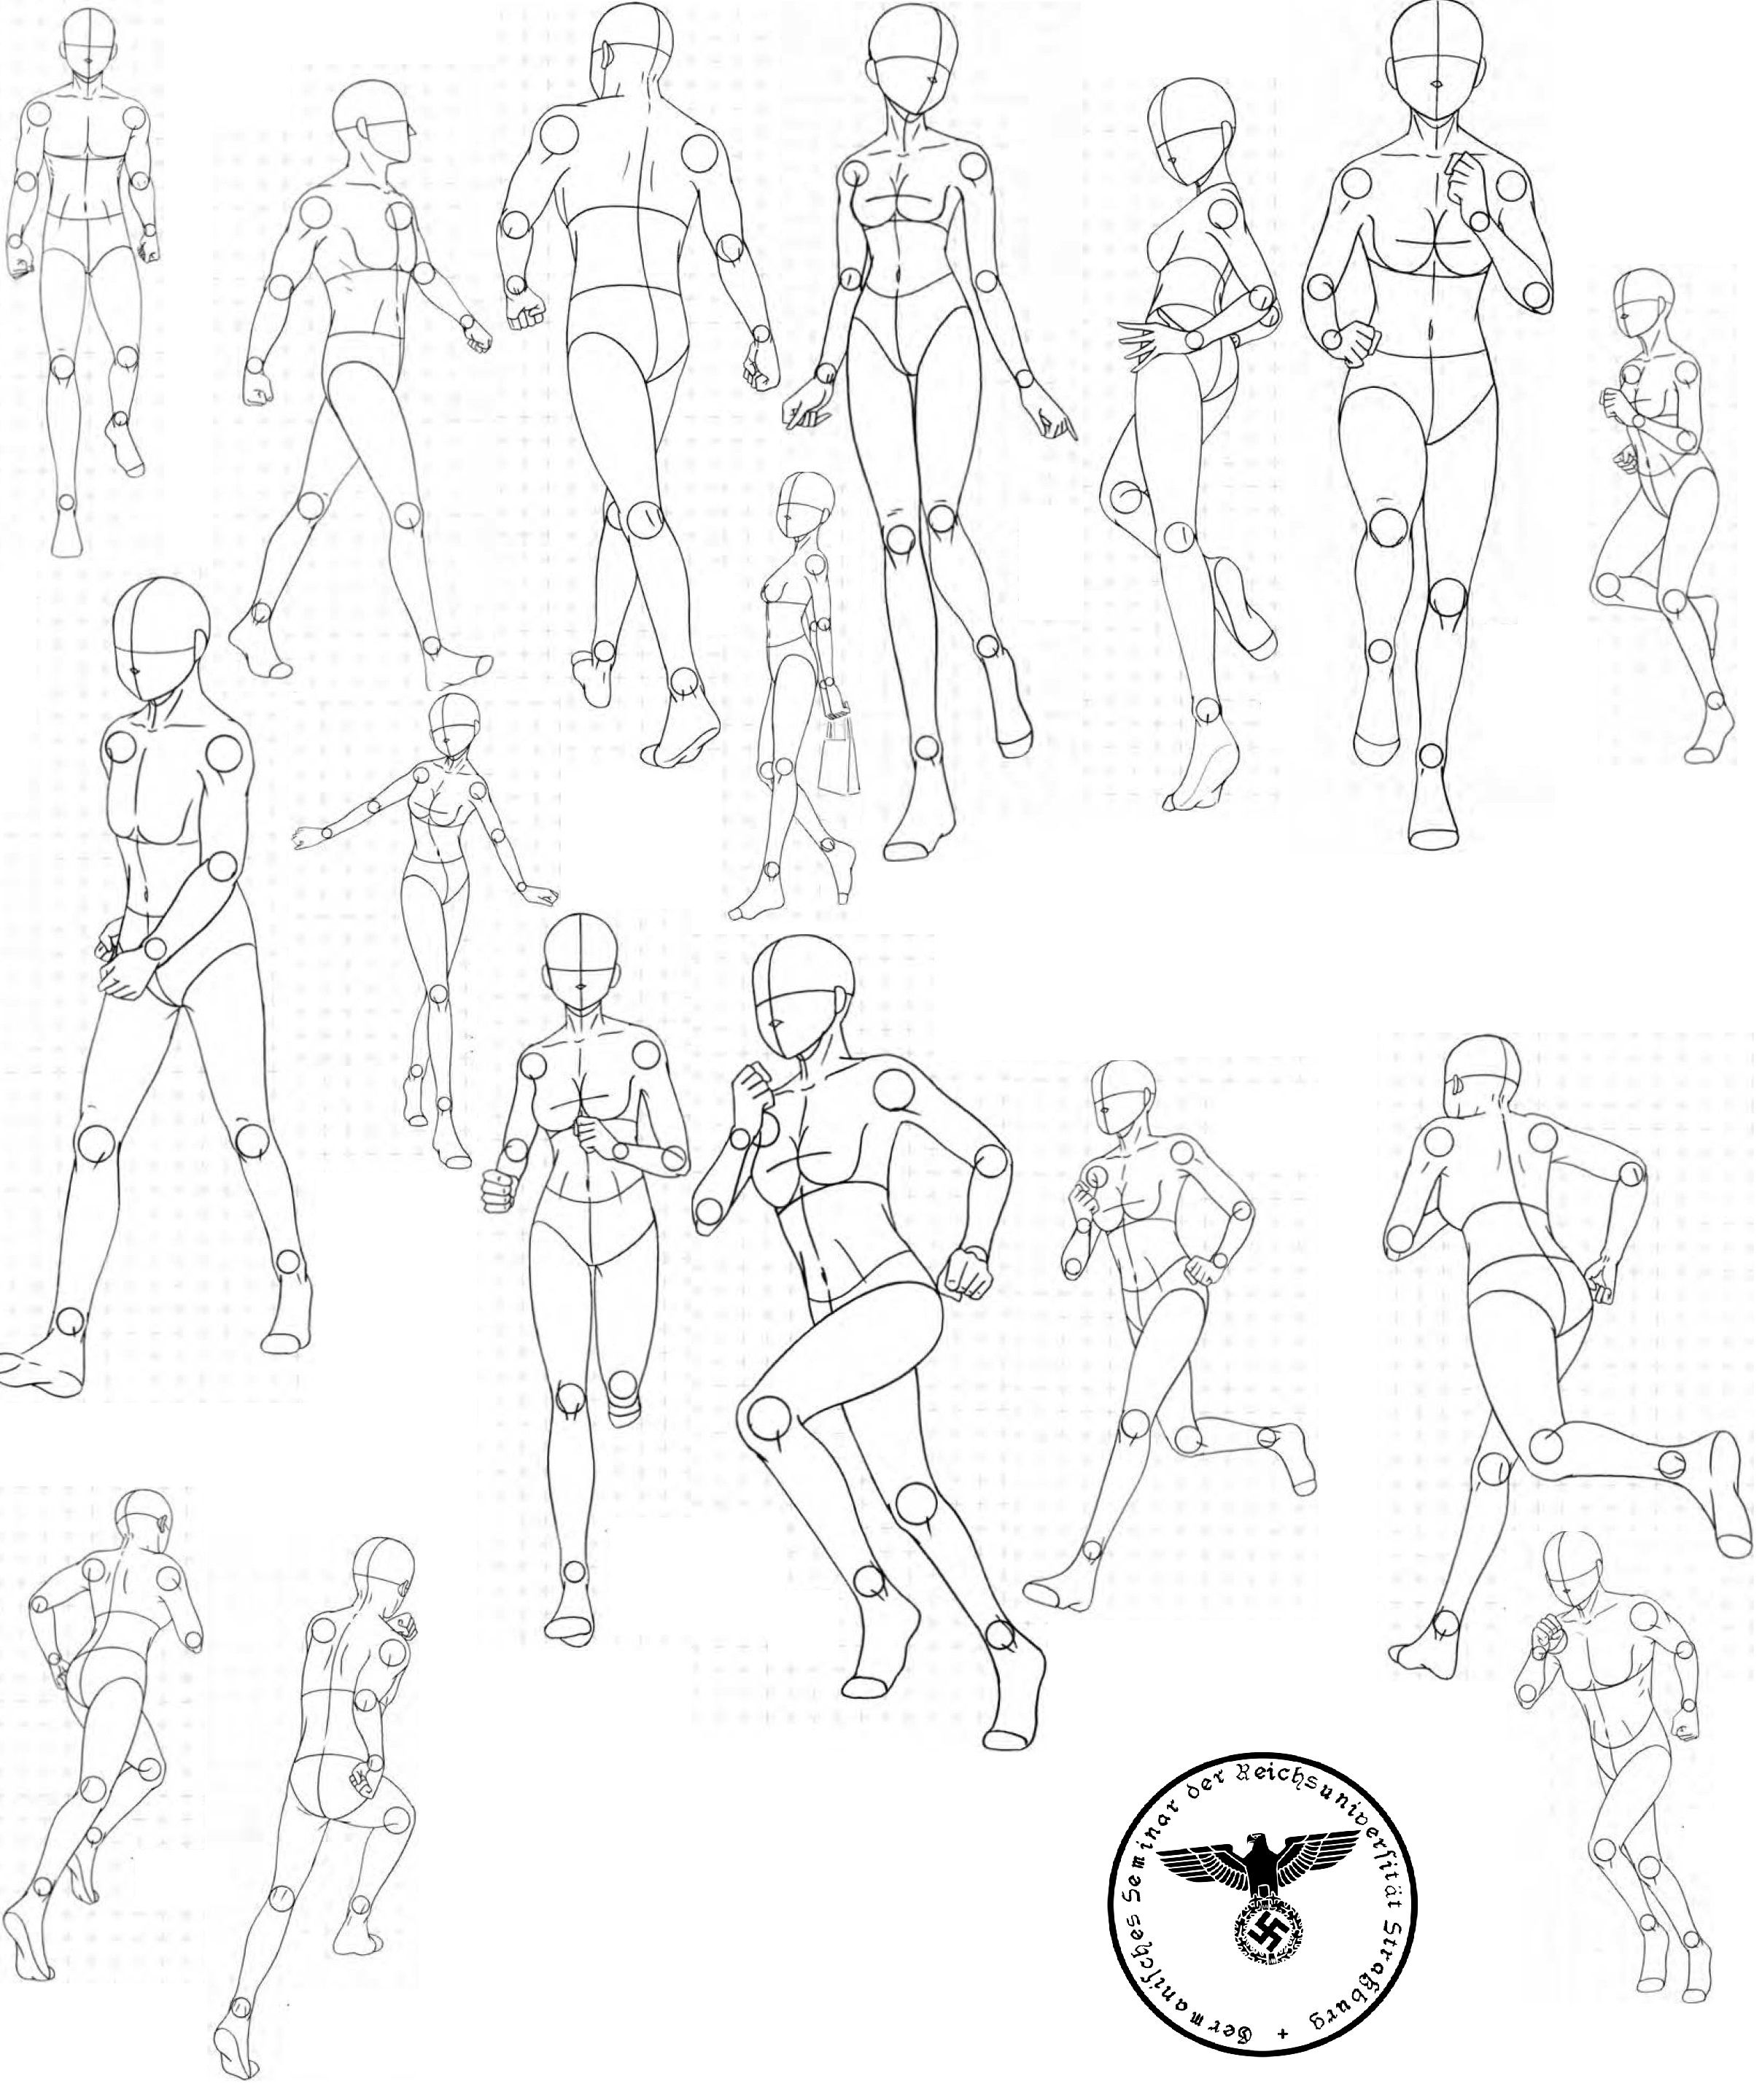 Find This Pin And More On Drawing Reference  Animation  Bodies Posed